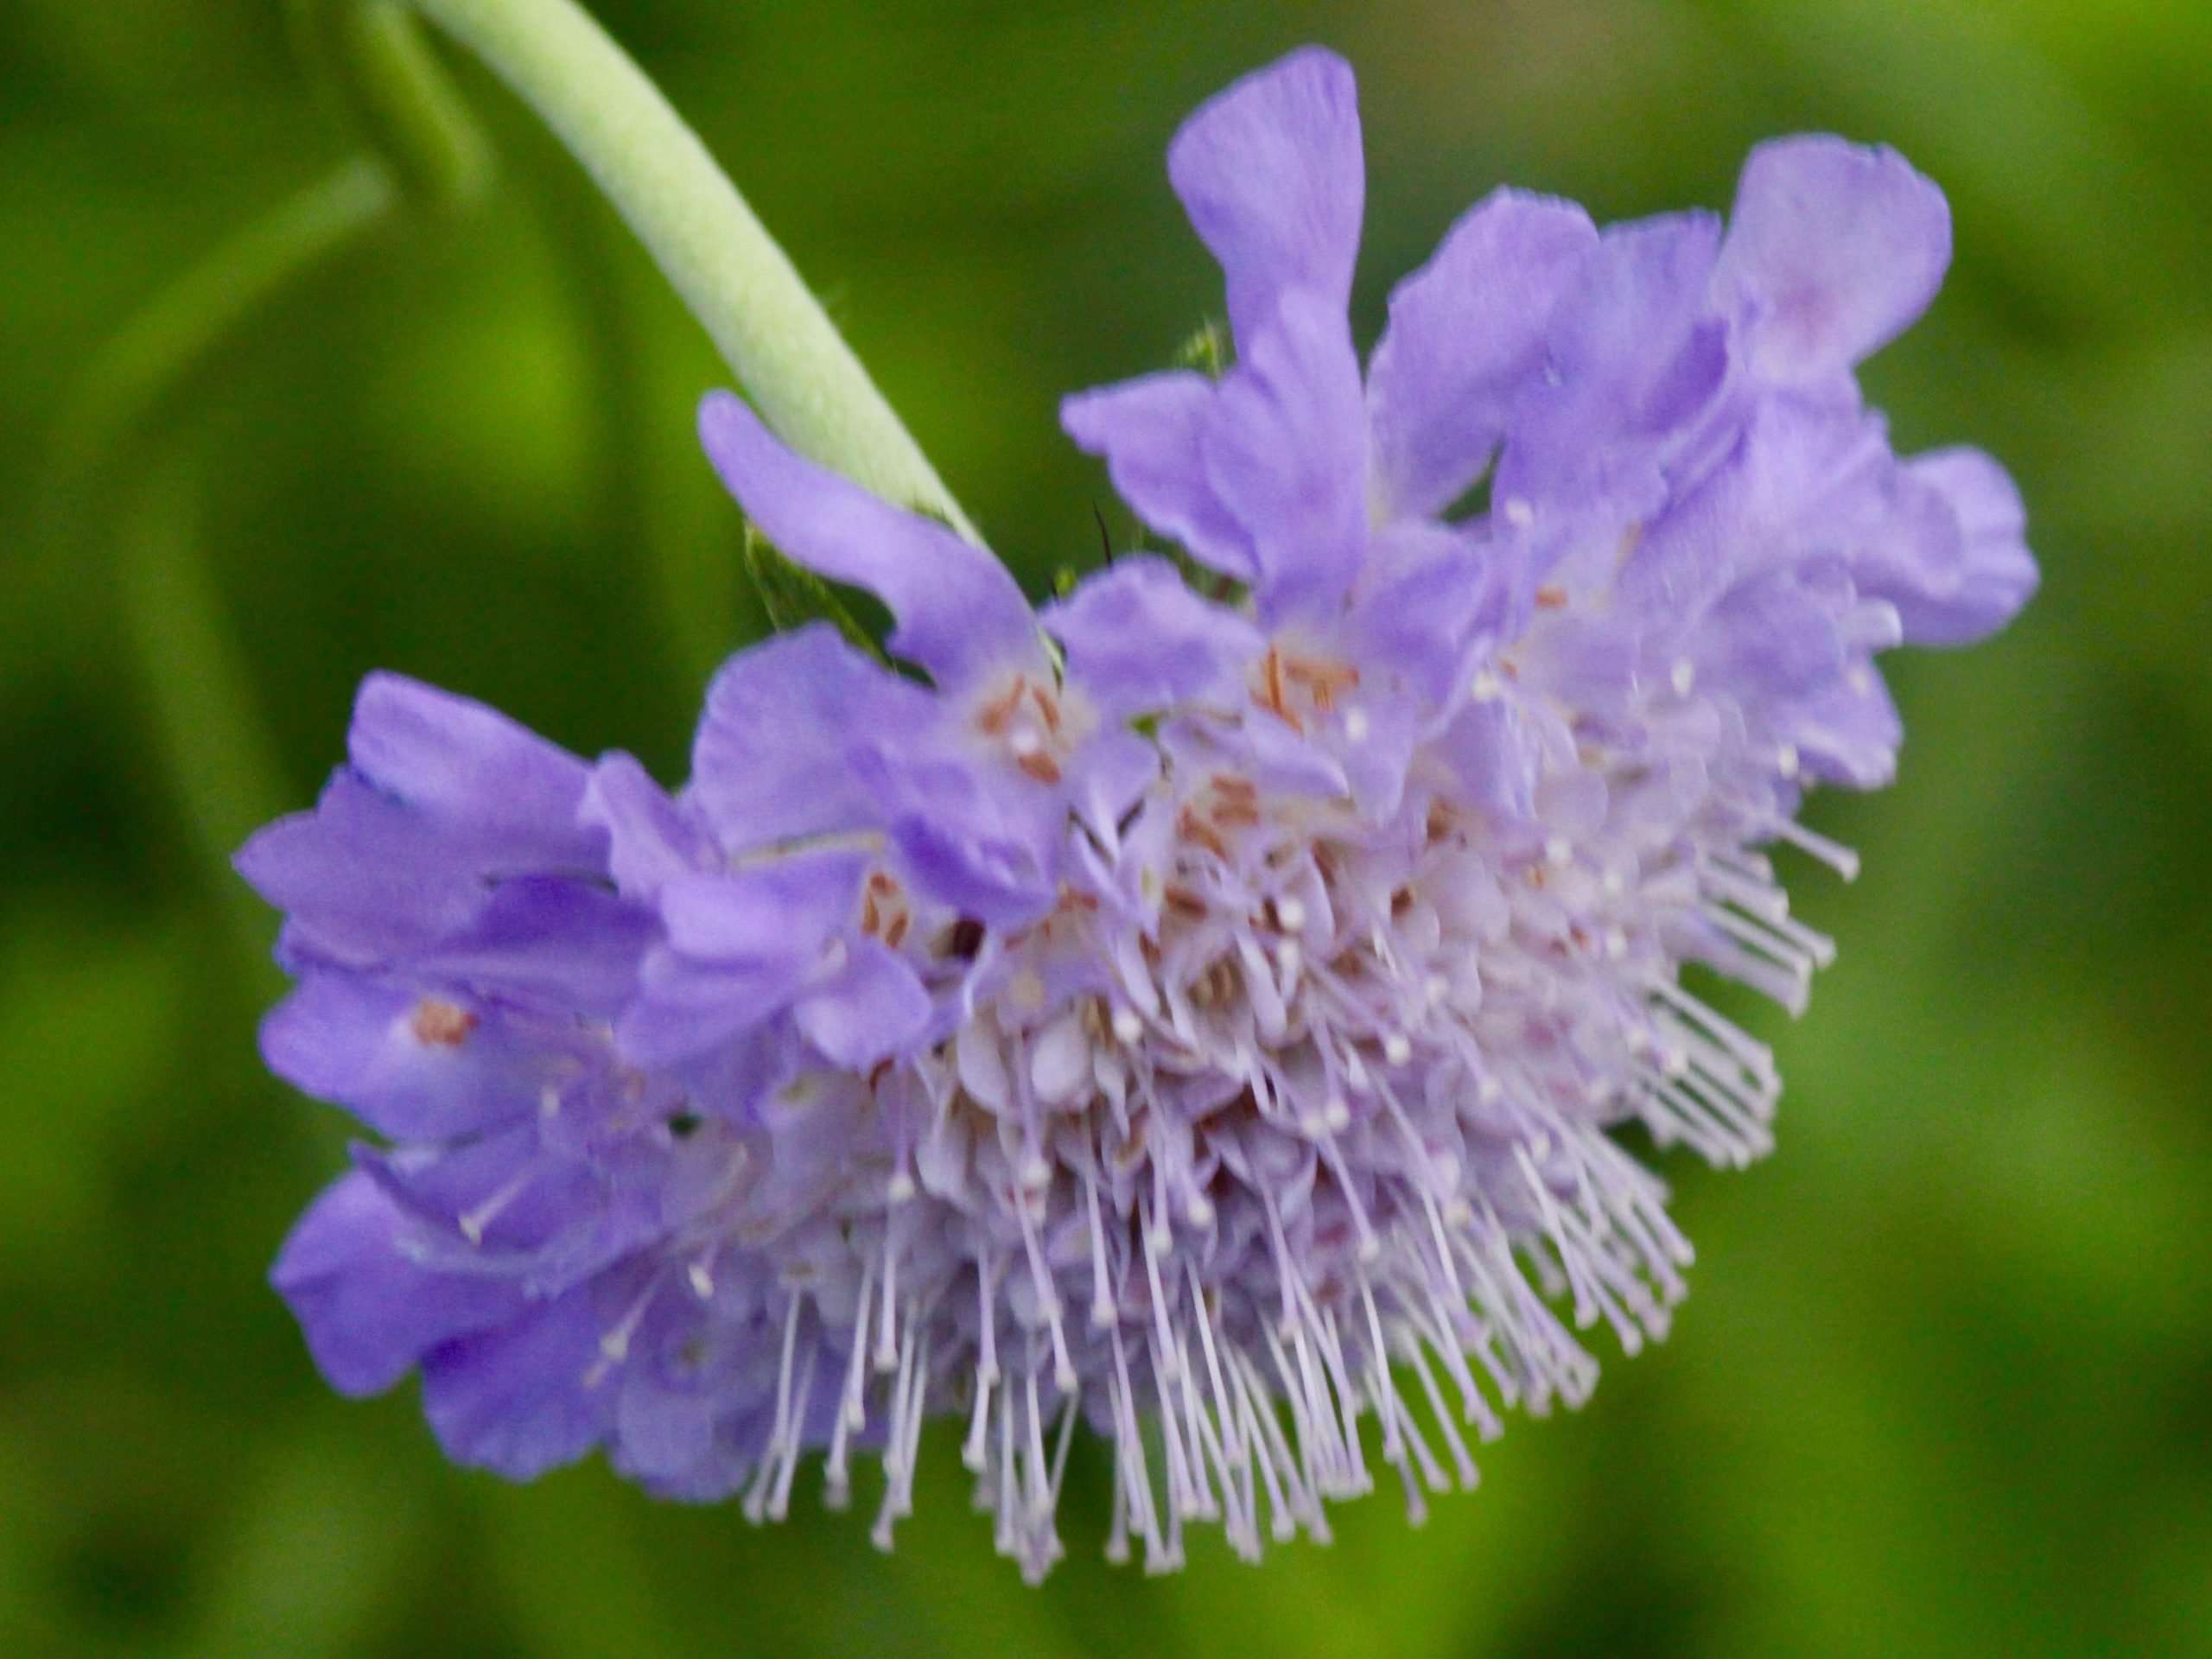 Lavender flower from the side